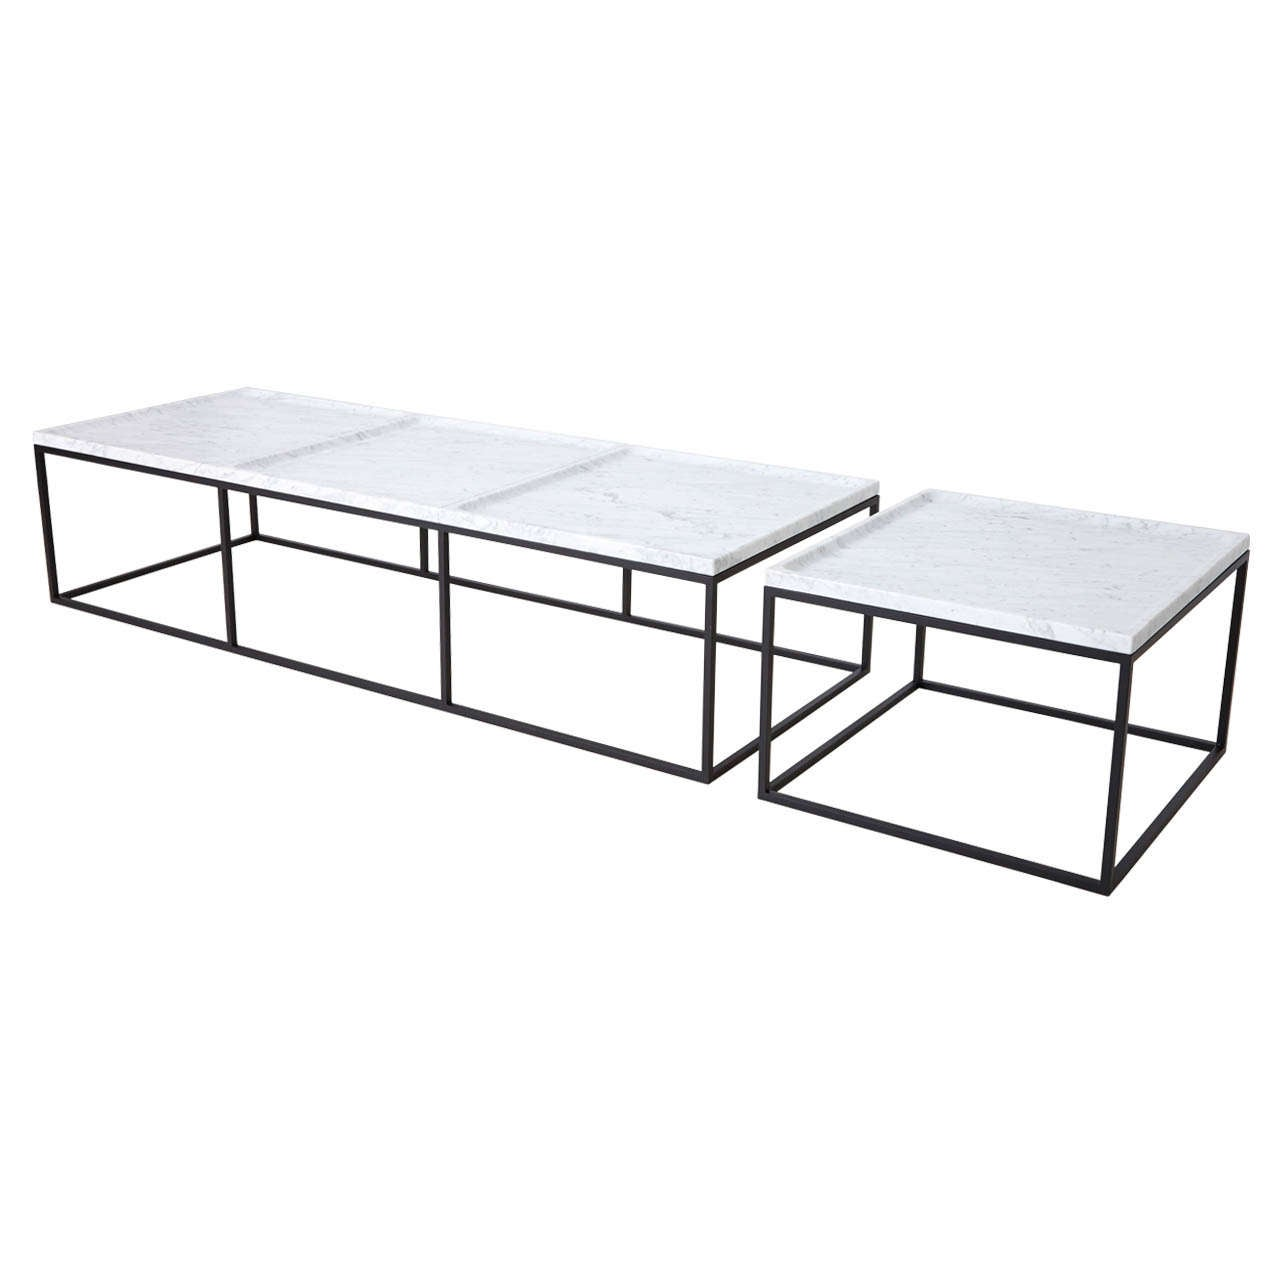 Coffee tables in white carrara marble at 1stdibs White marble coffee table